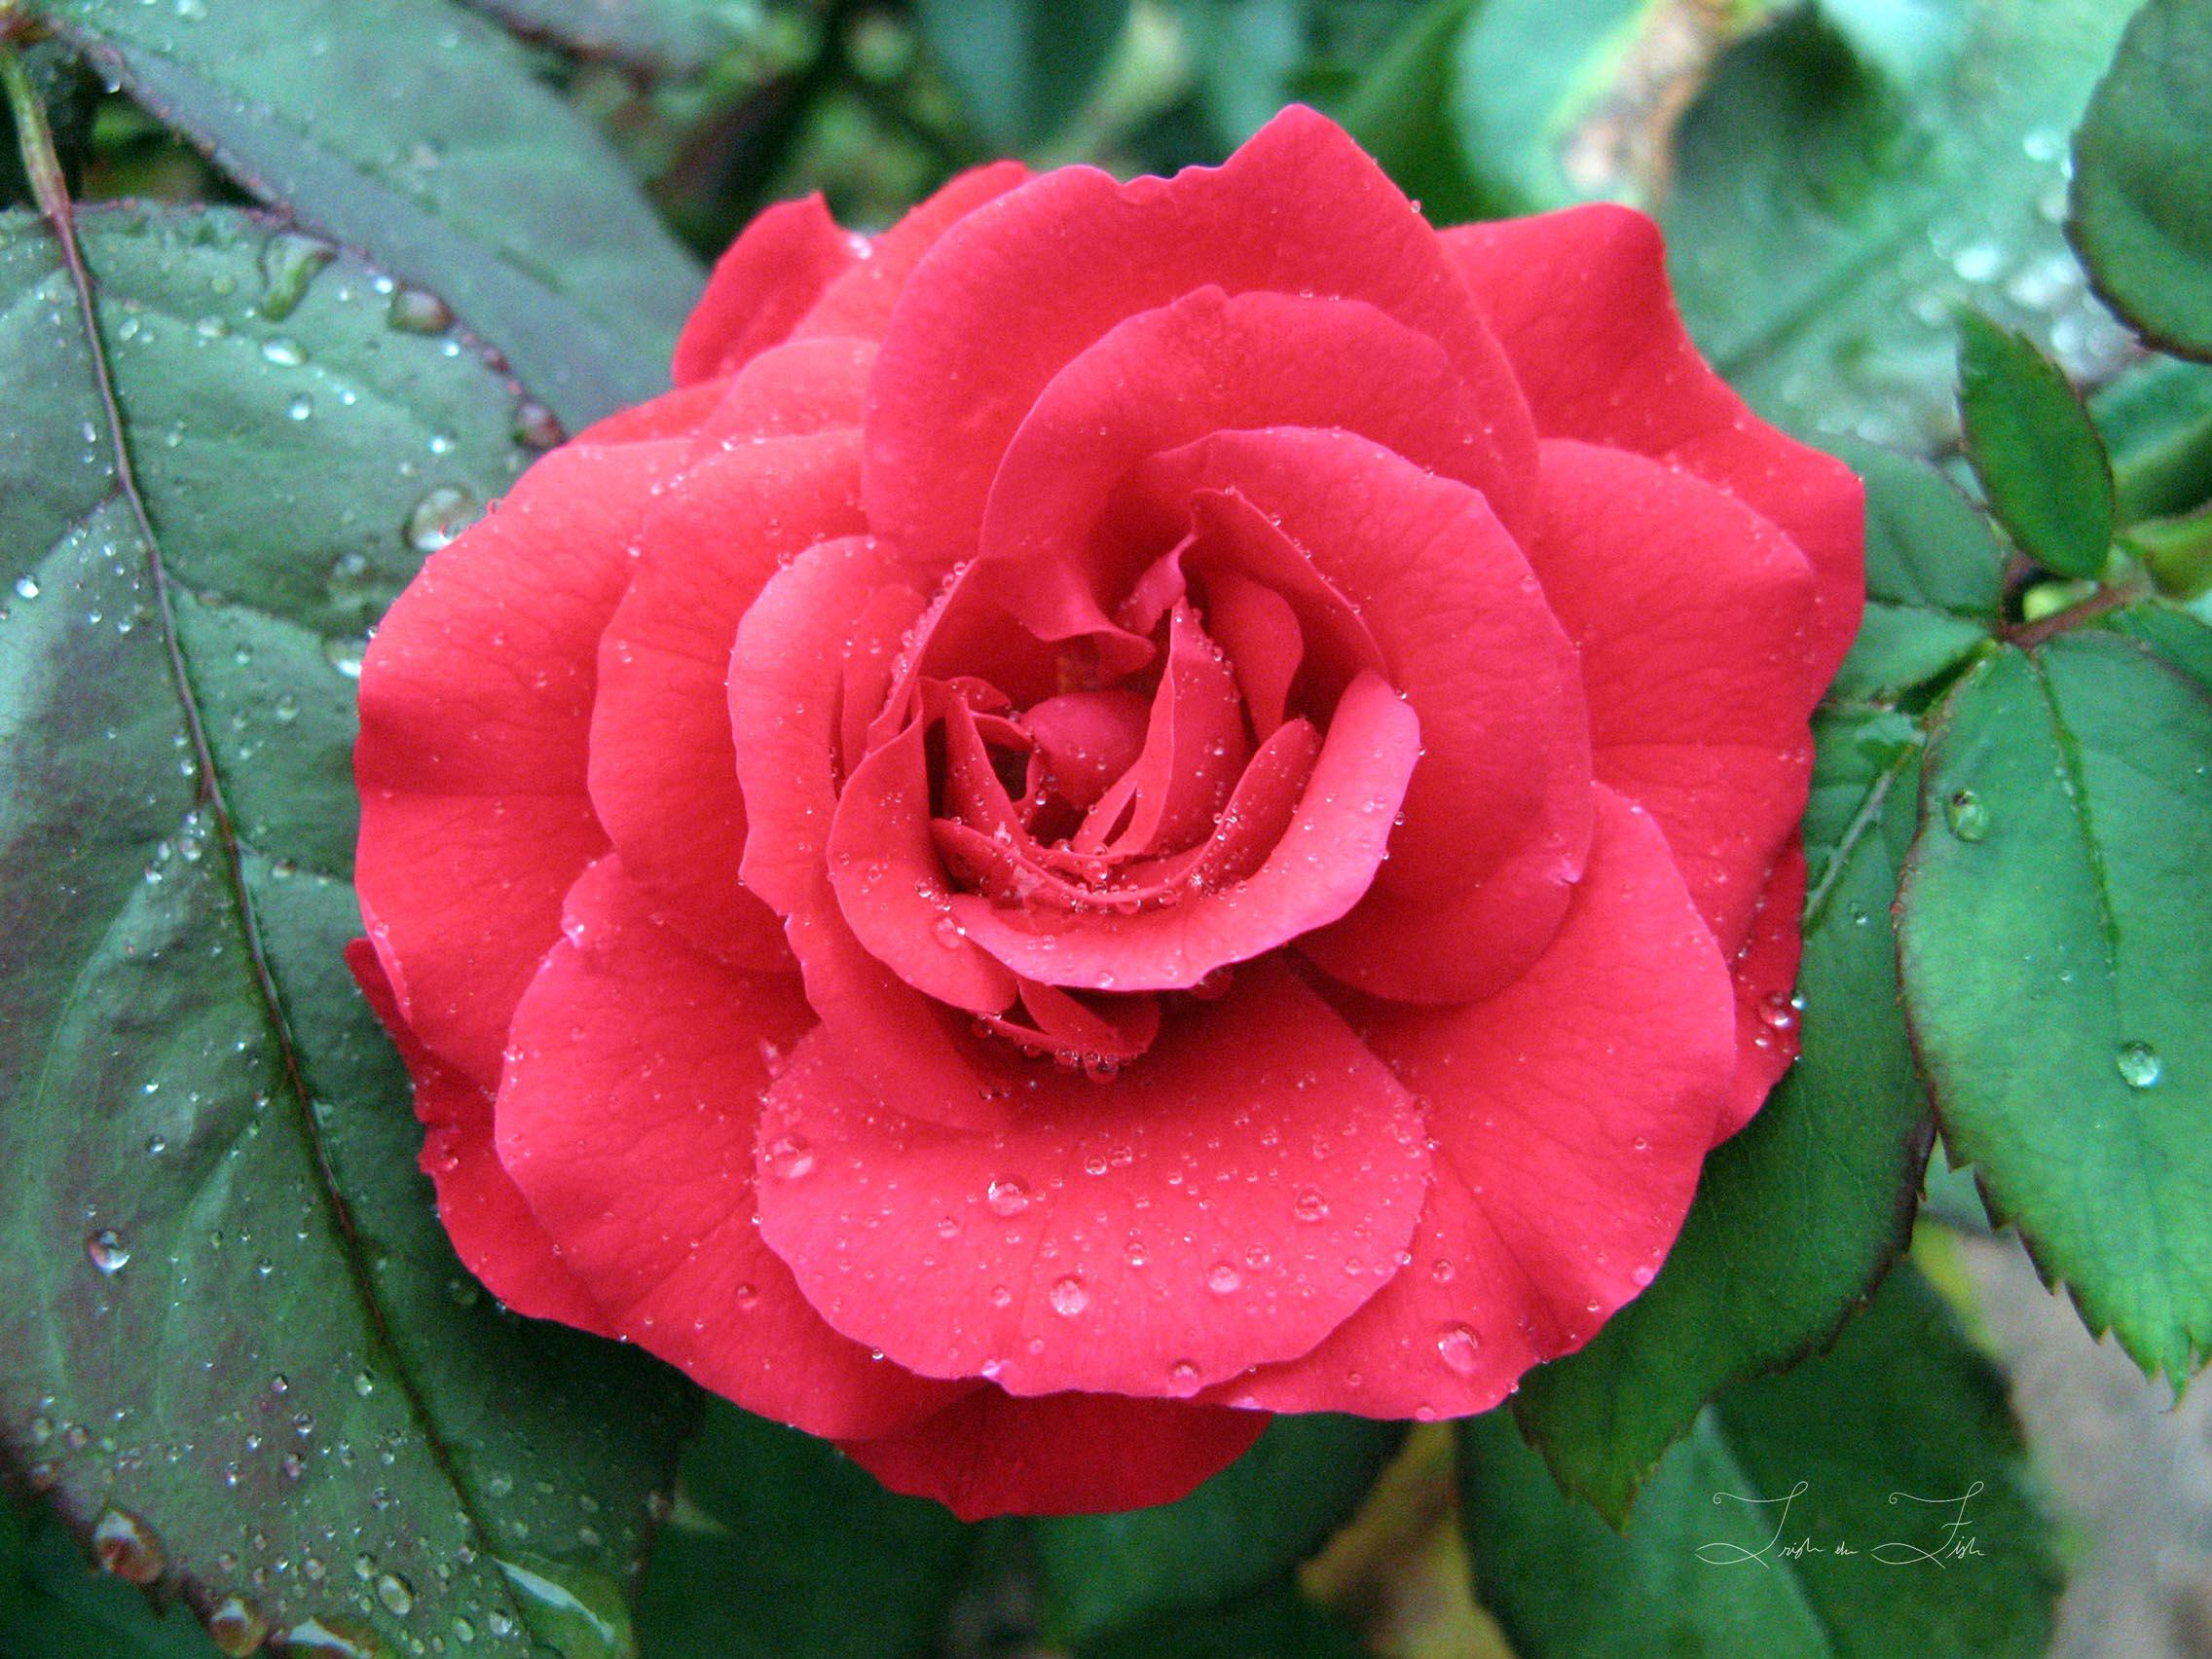 Dewy red Rose in Full Bloom